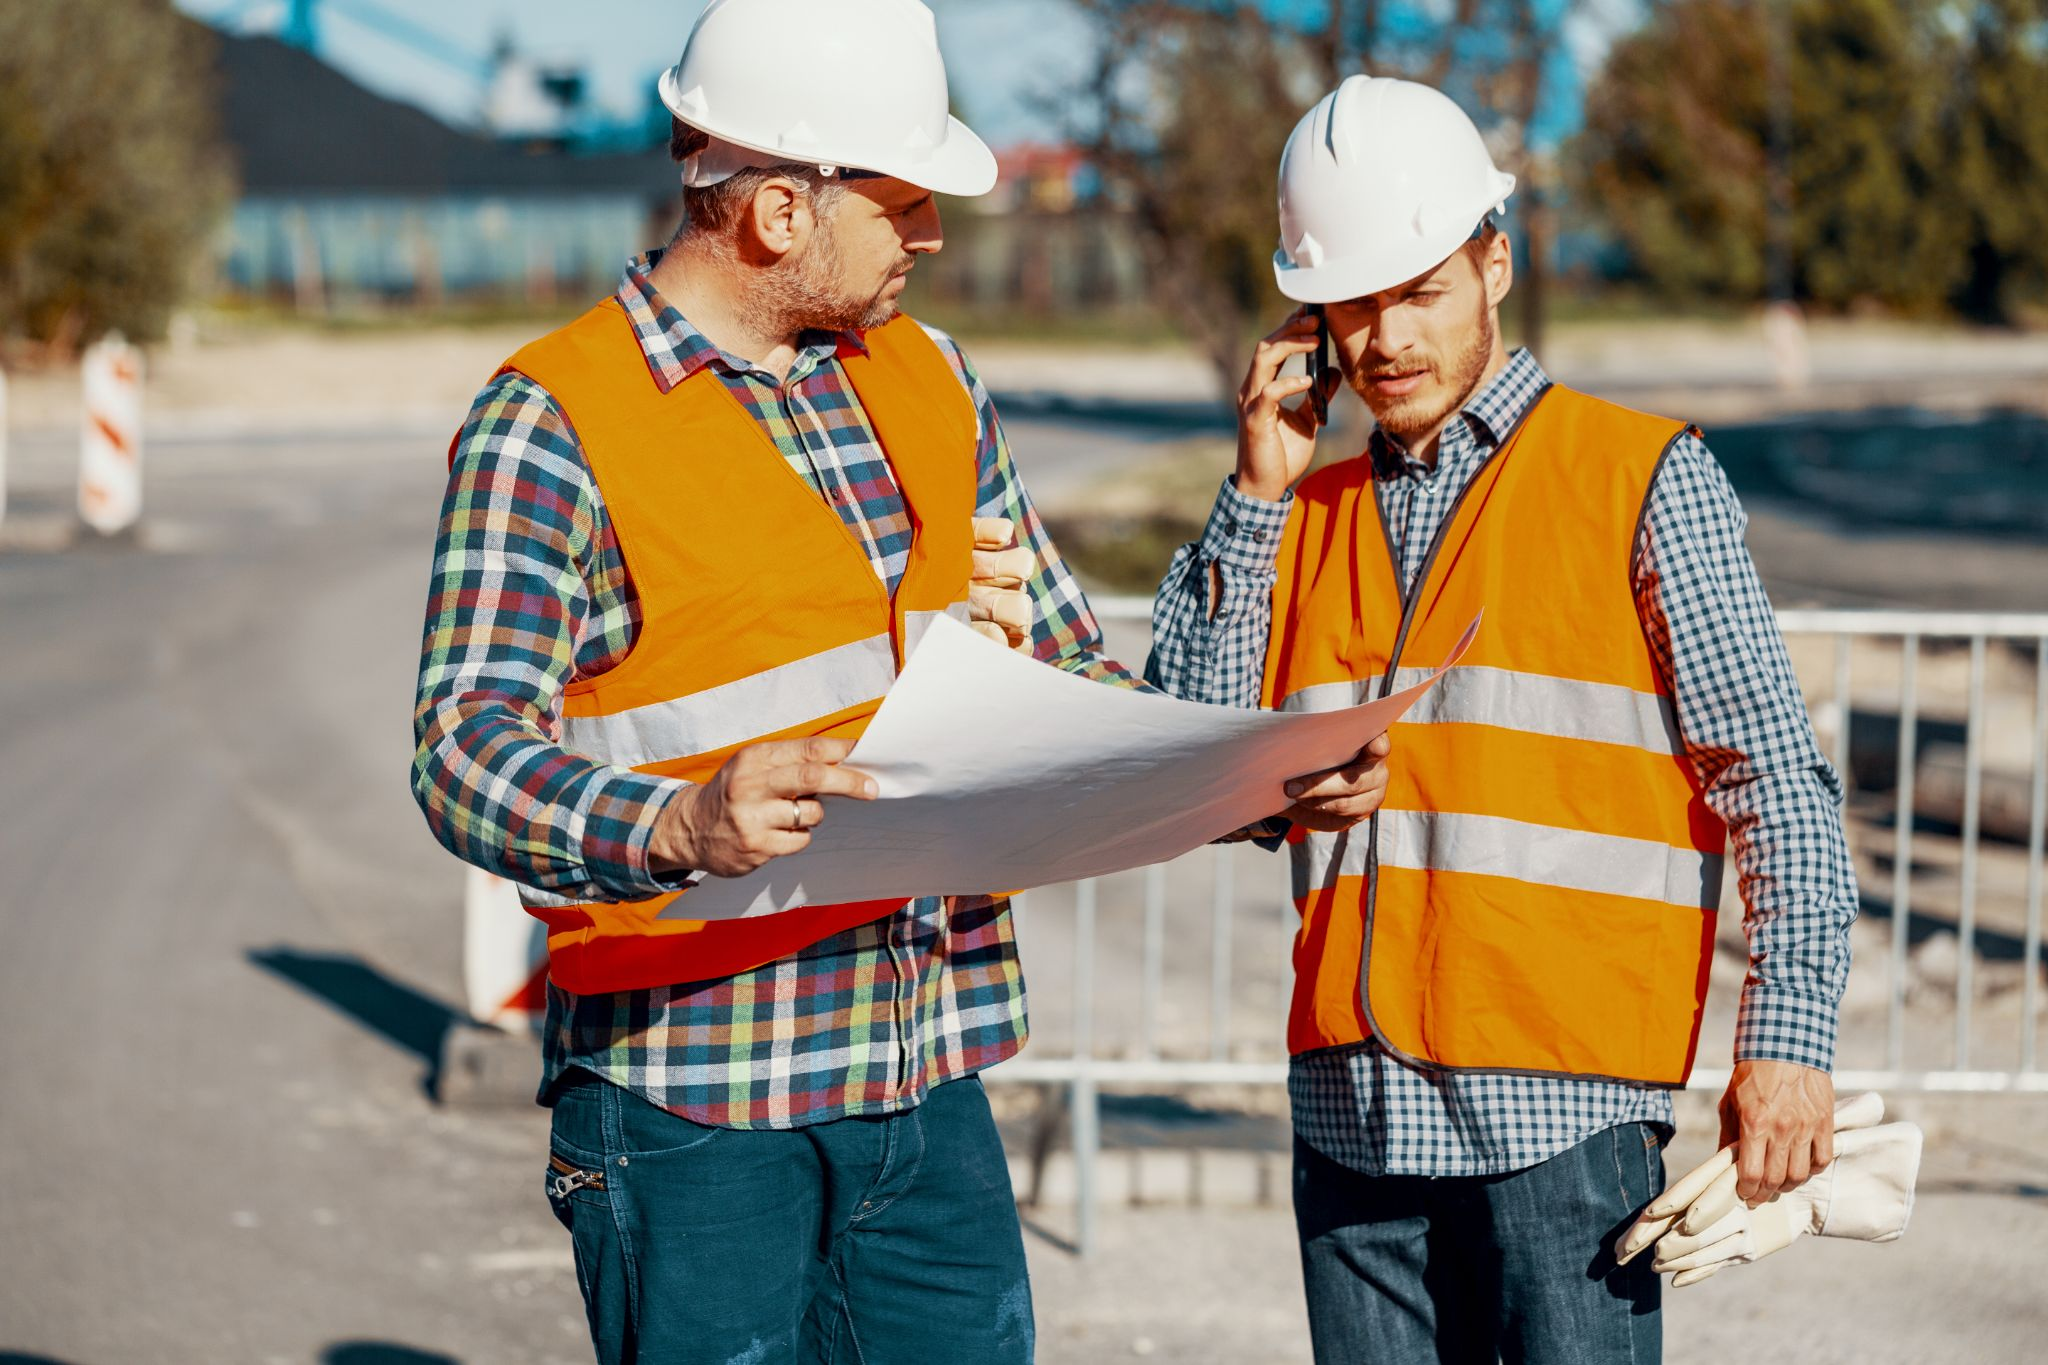 two structural engineers discussing a project